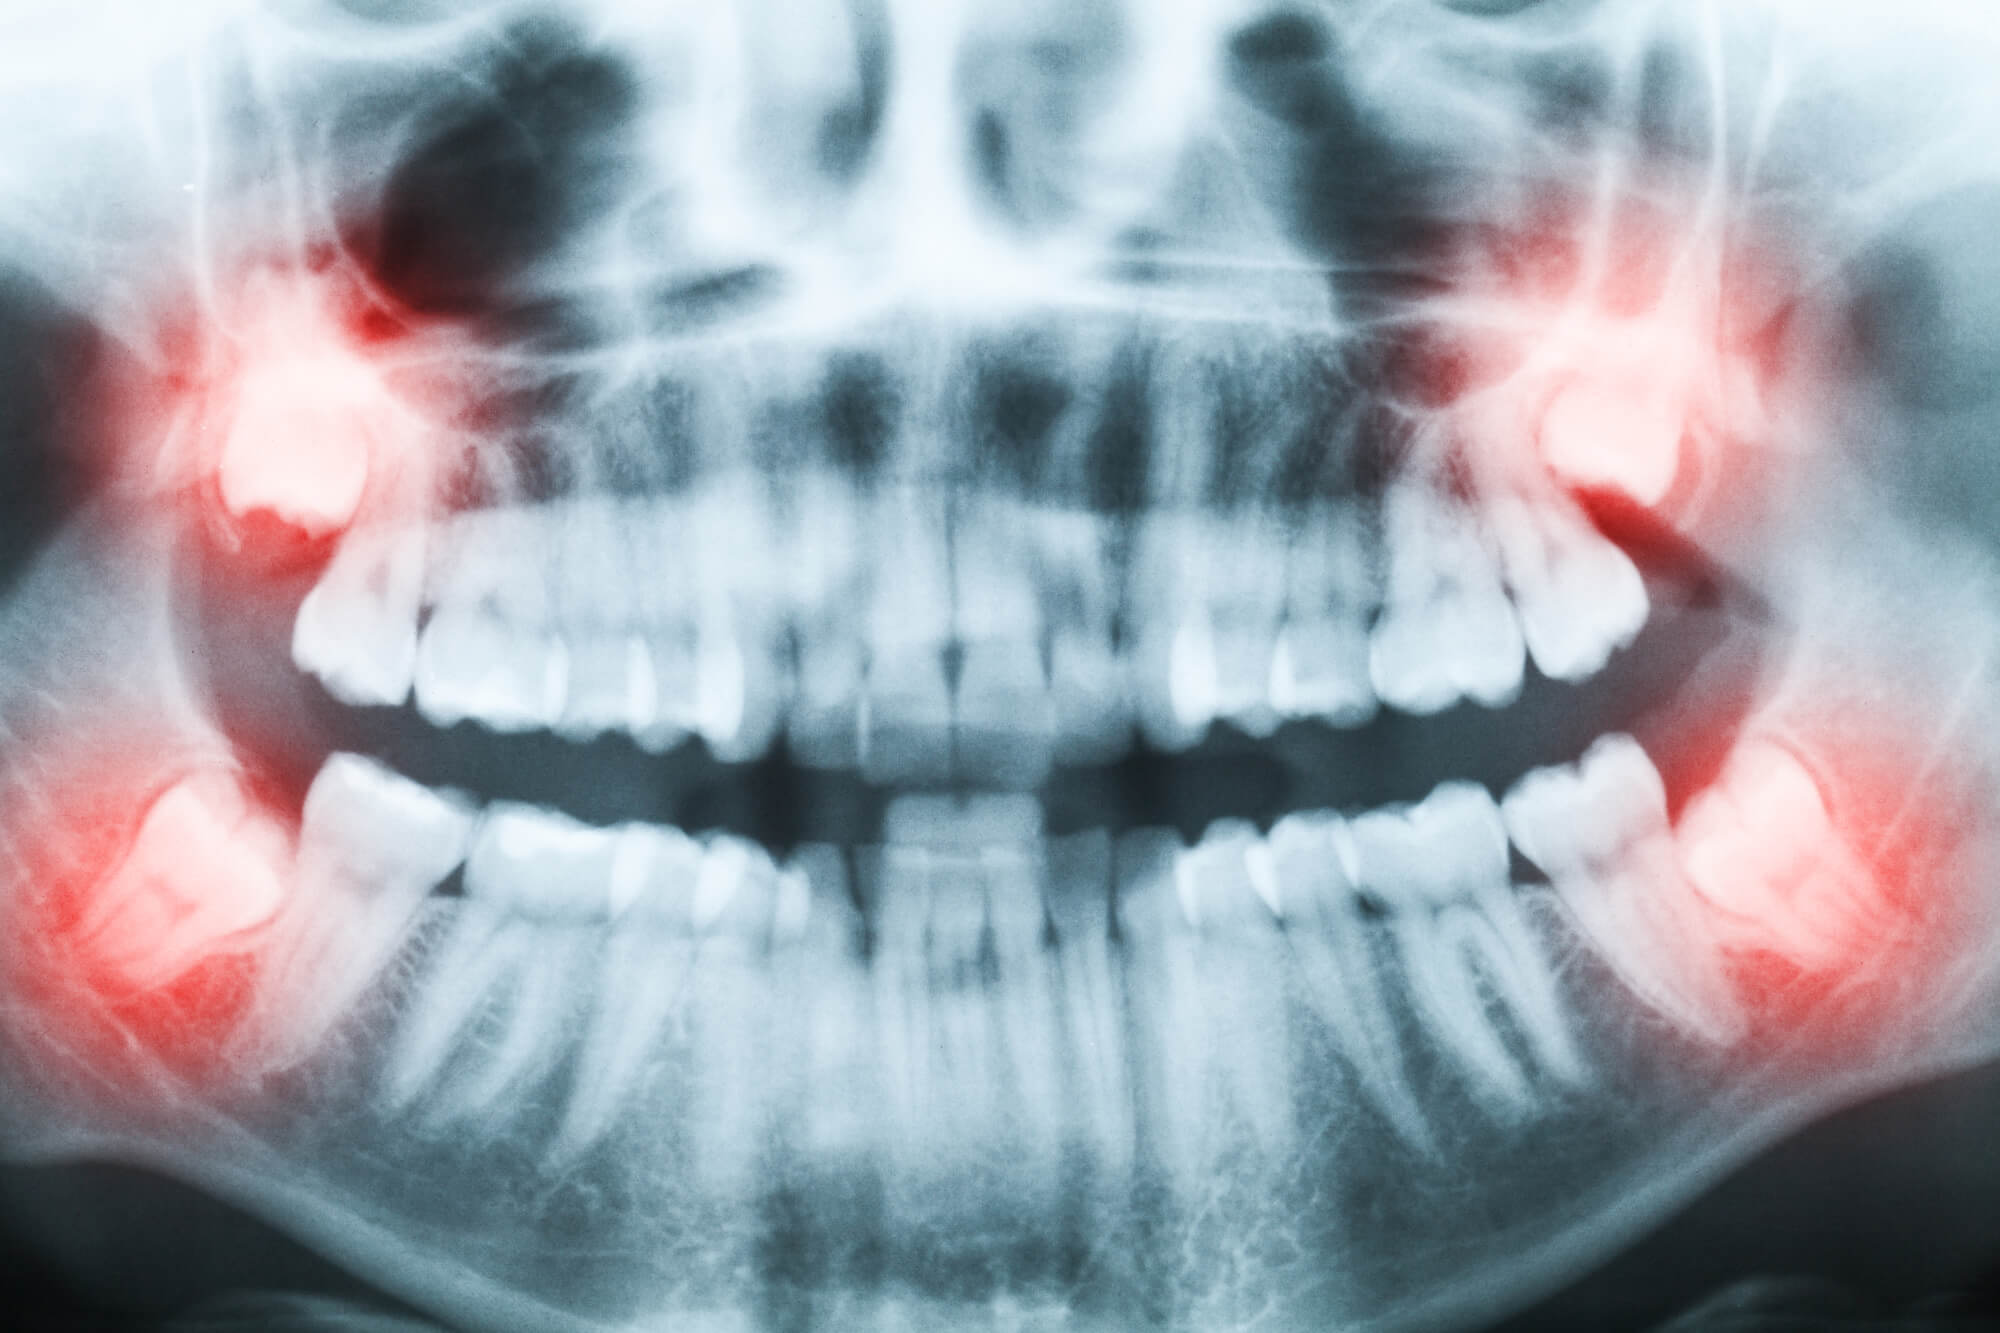 My wisdom tooth is aching or insensible!